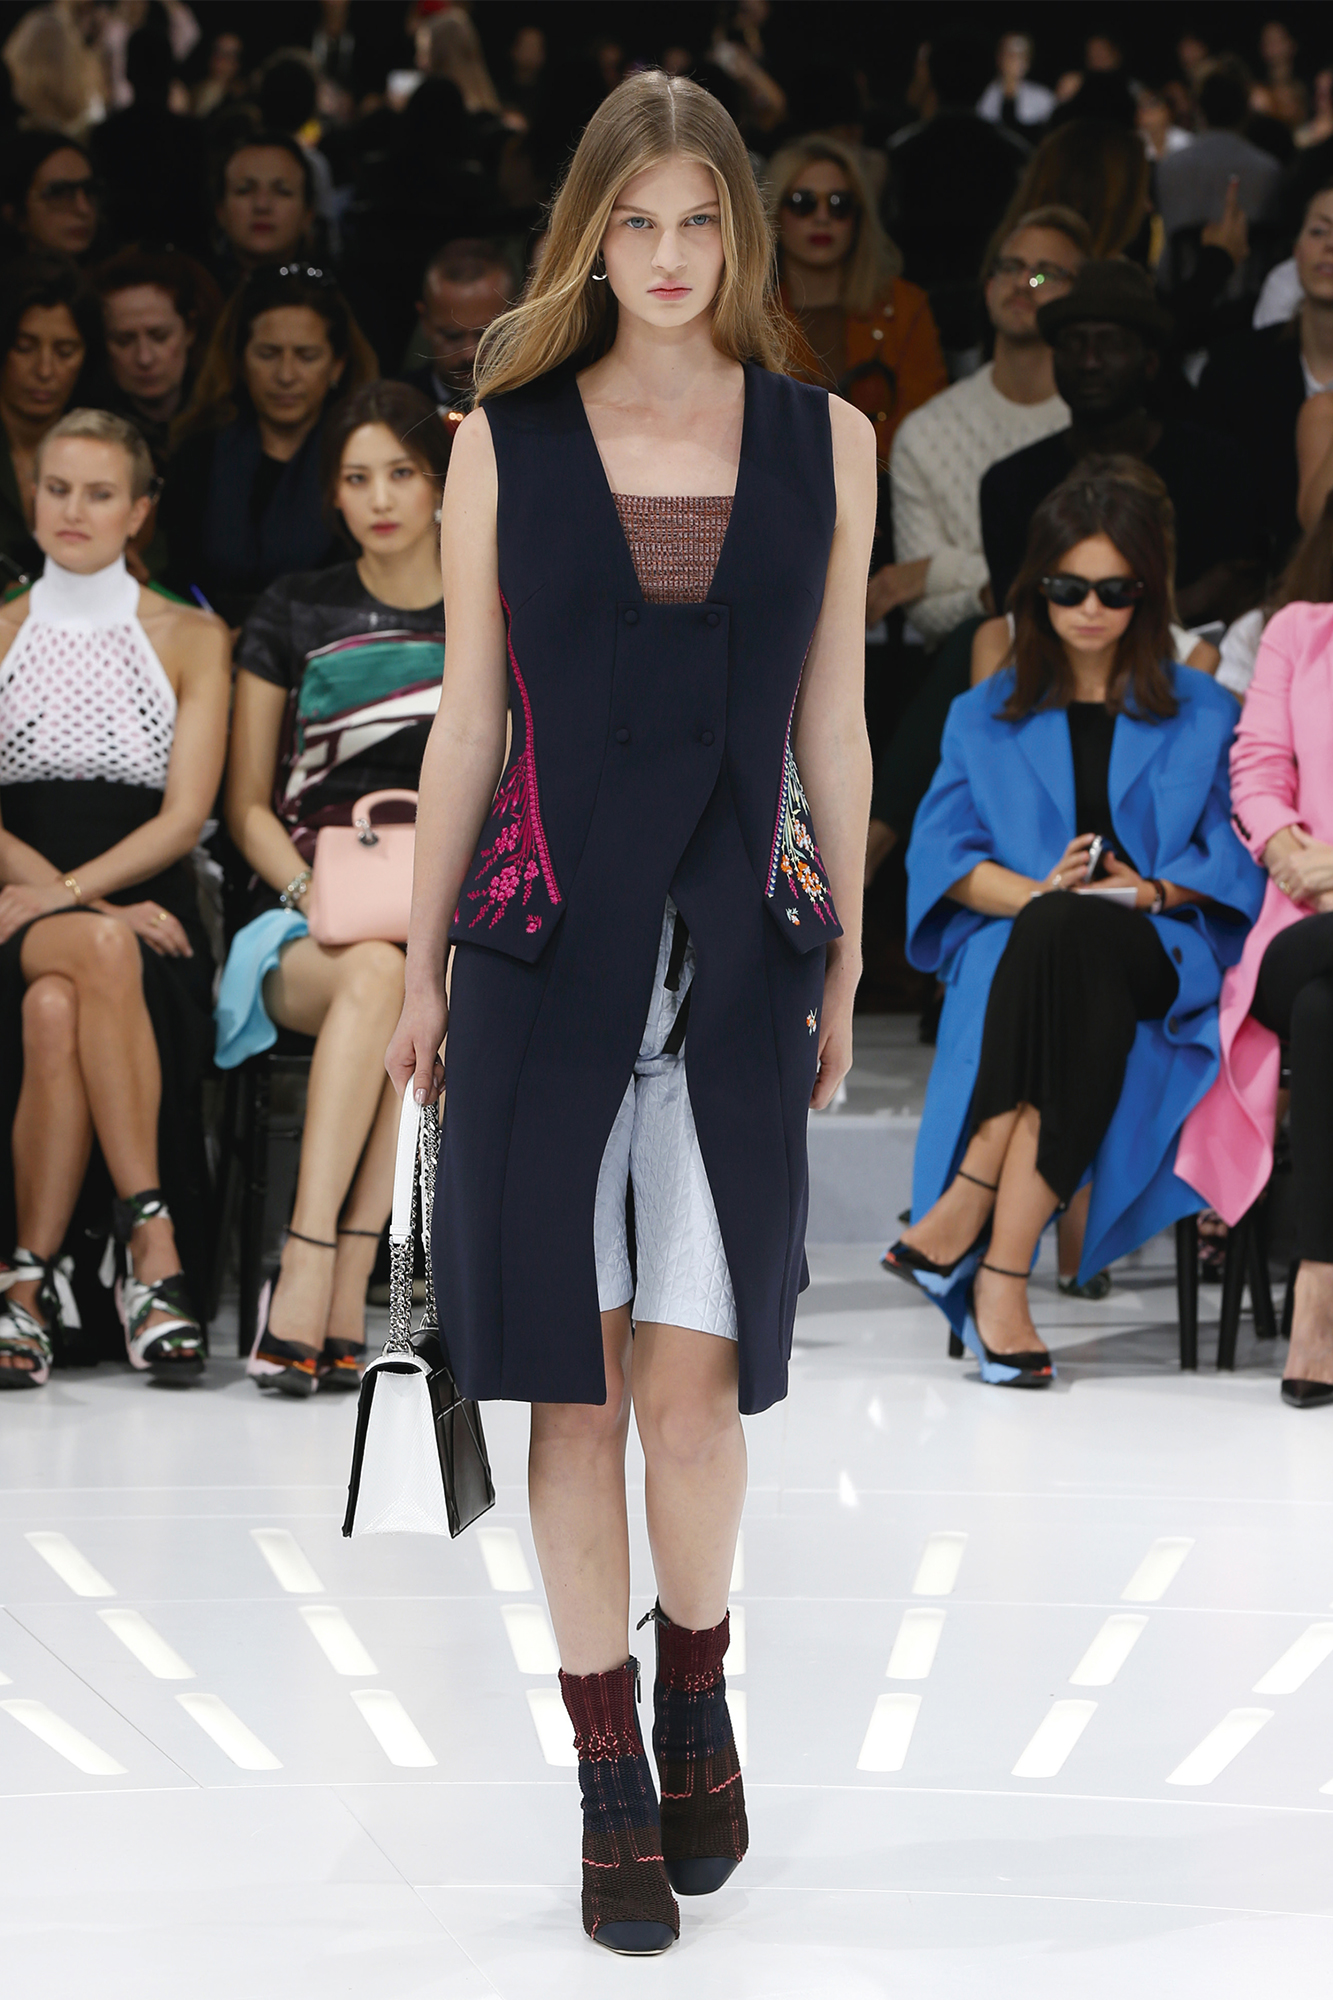 New Western Fashion Christian Dior Ready To Wear Dresses Spring Summer Collection 2015 (28)